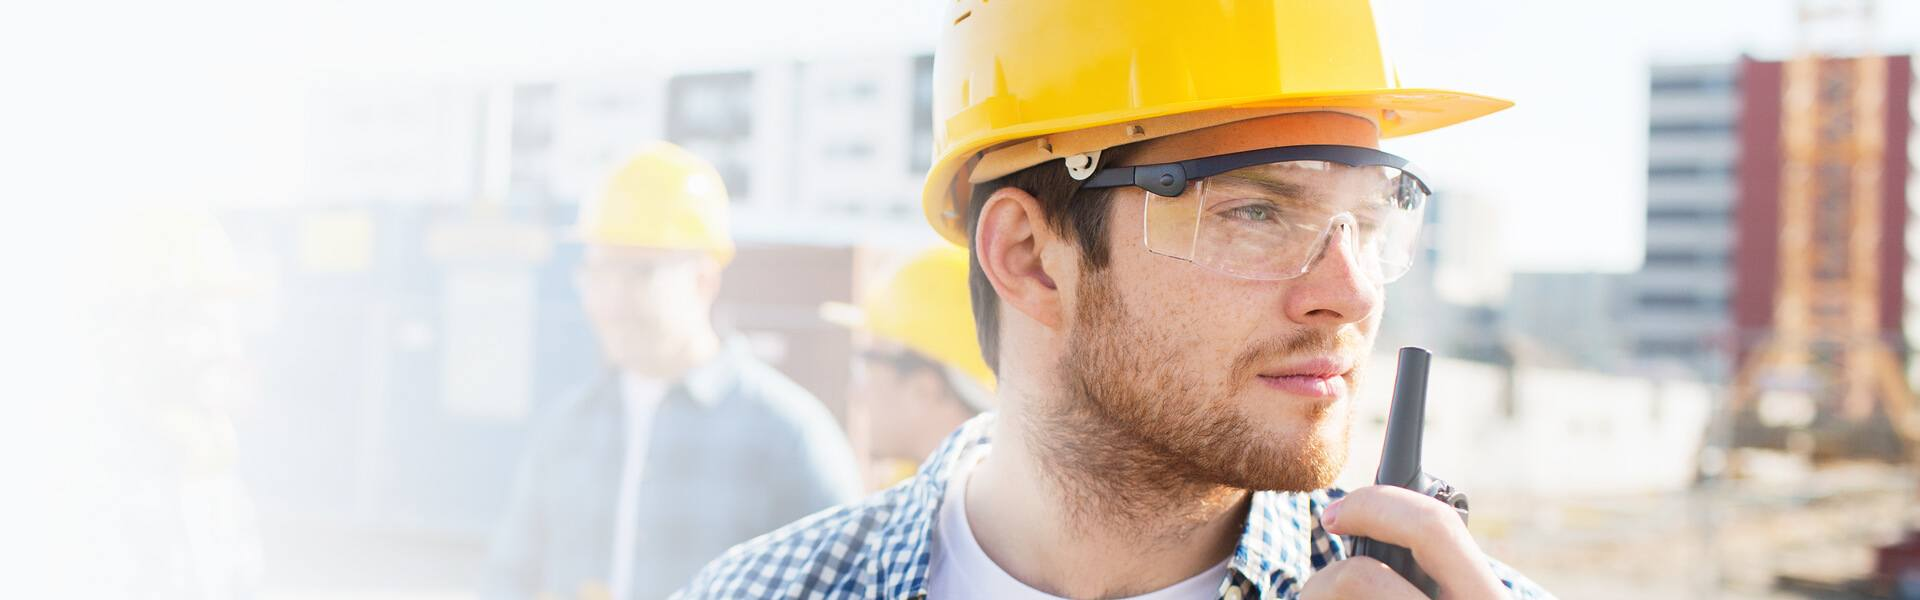 man in hard hat and safety glasses